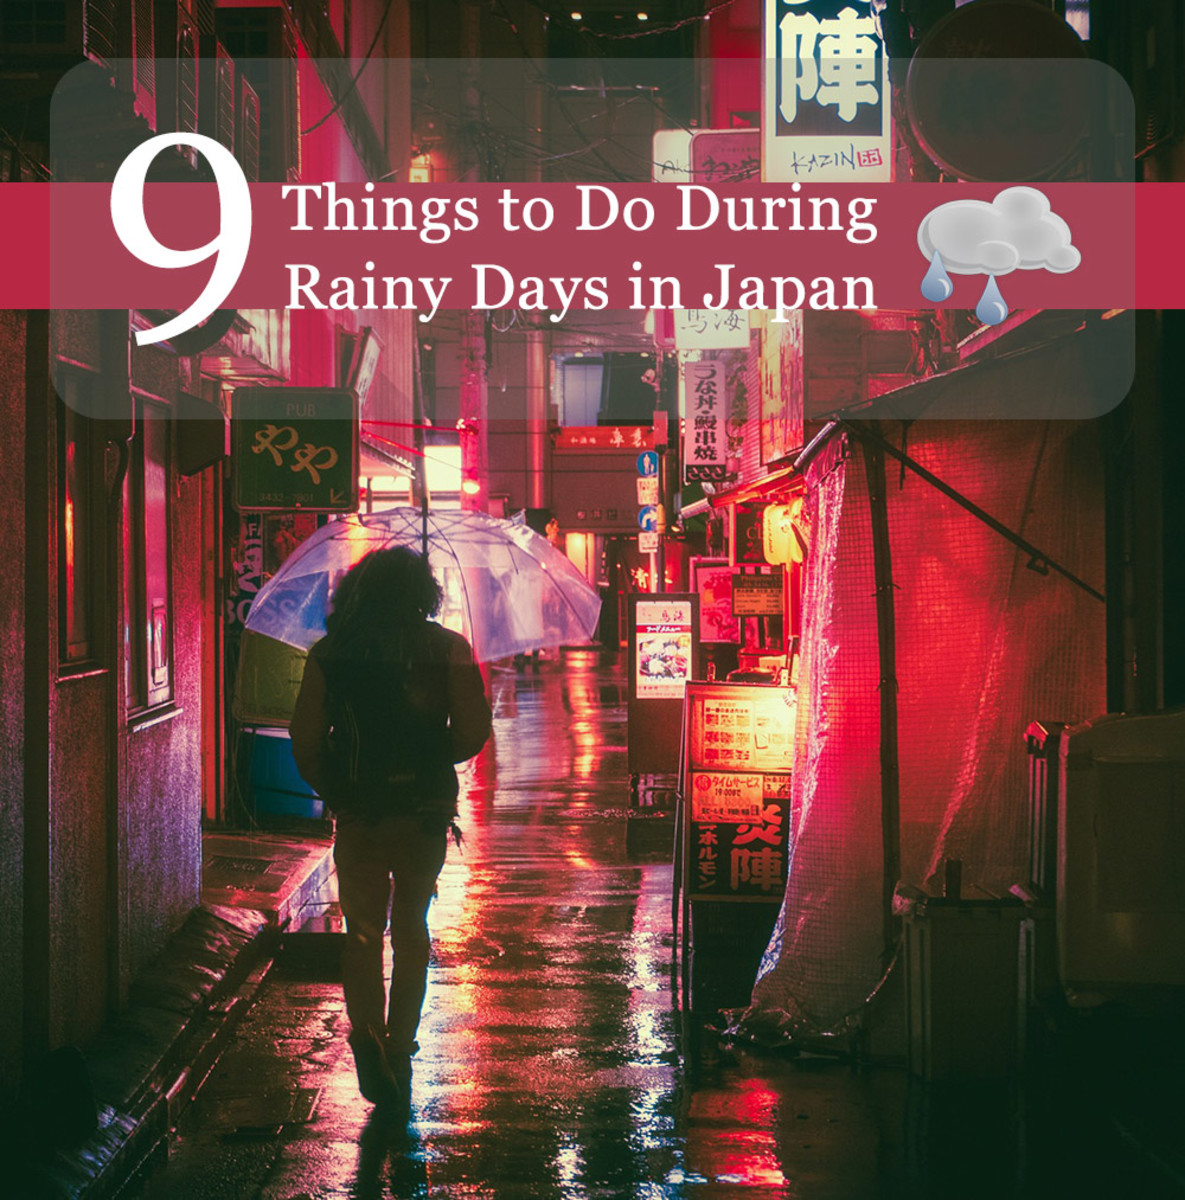 Don't let a rainy day dampen your precious Japanese holiday.